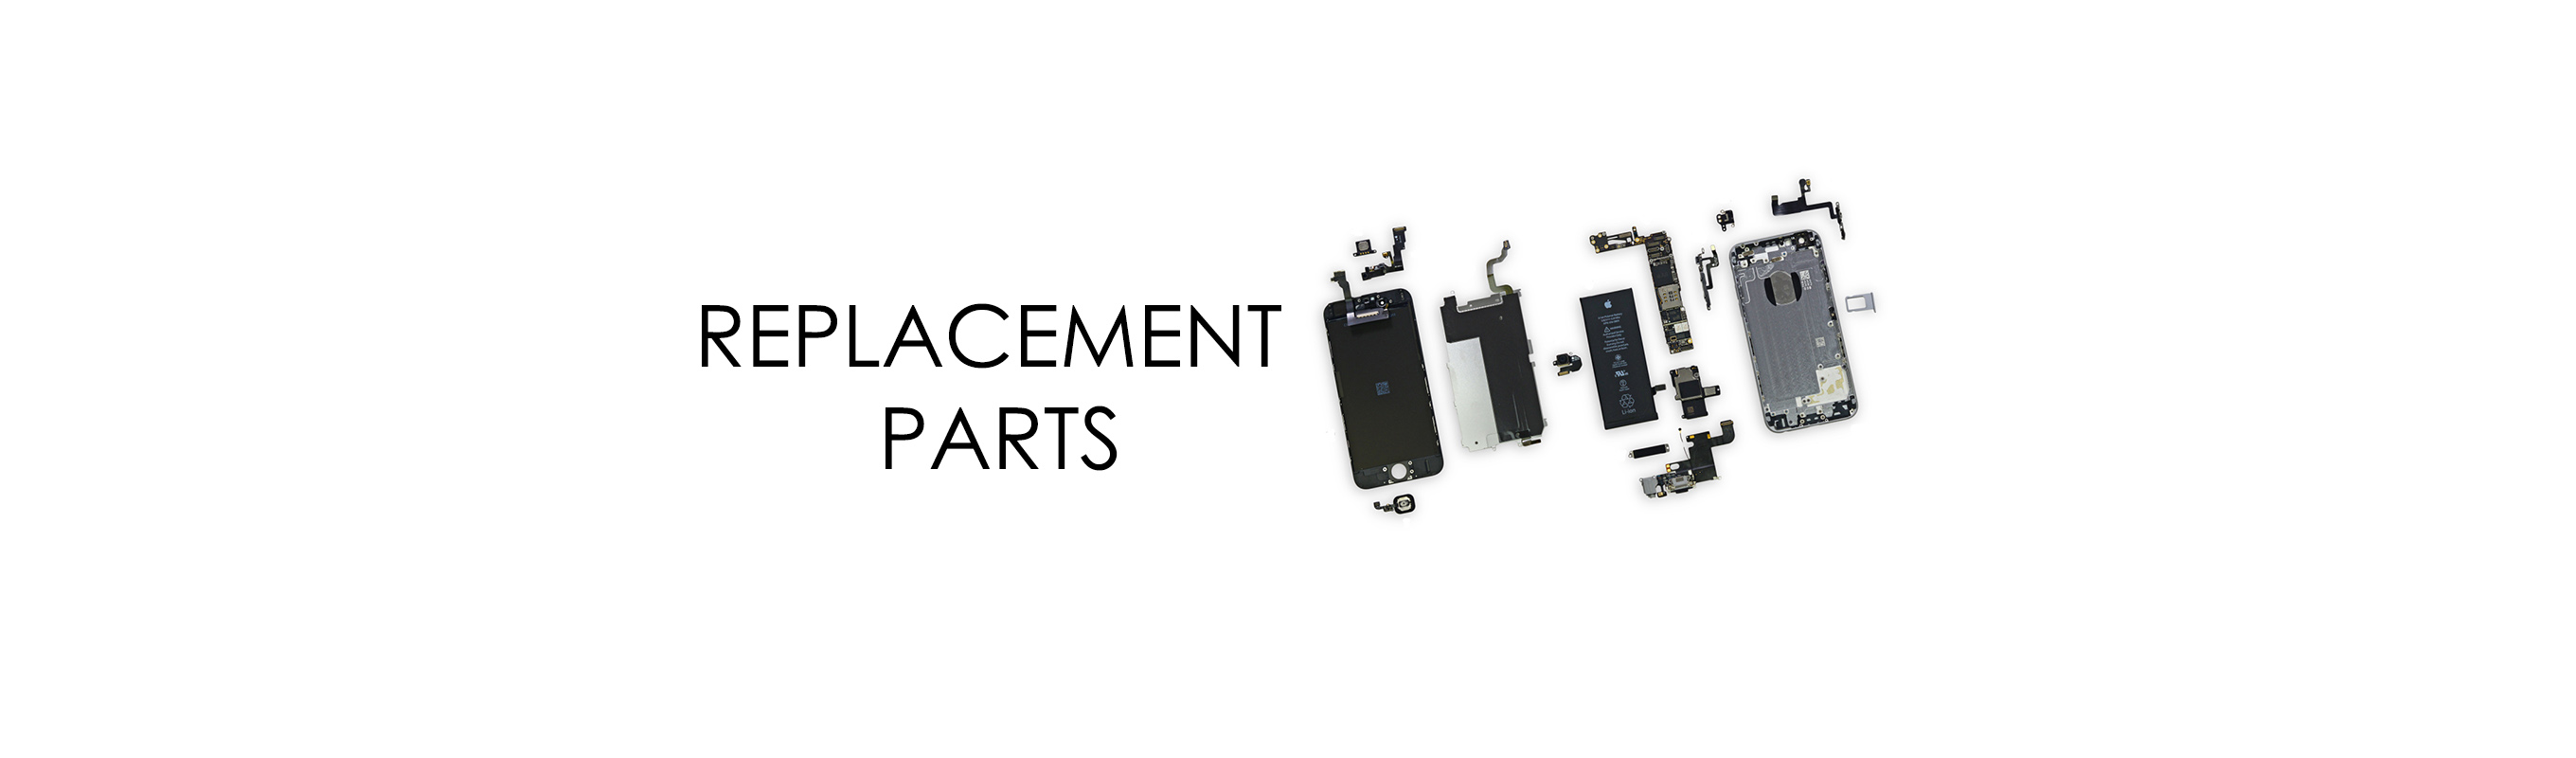 Replacement Parts for iPhone 6s Plus